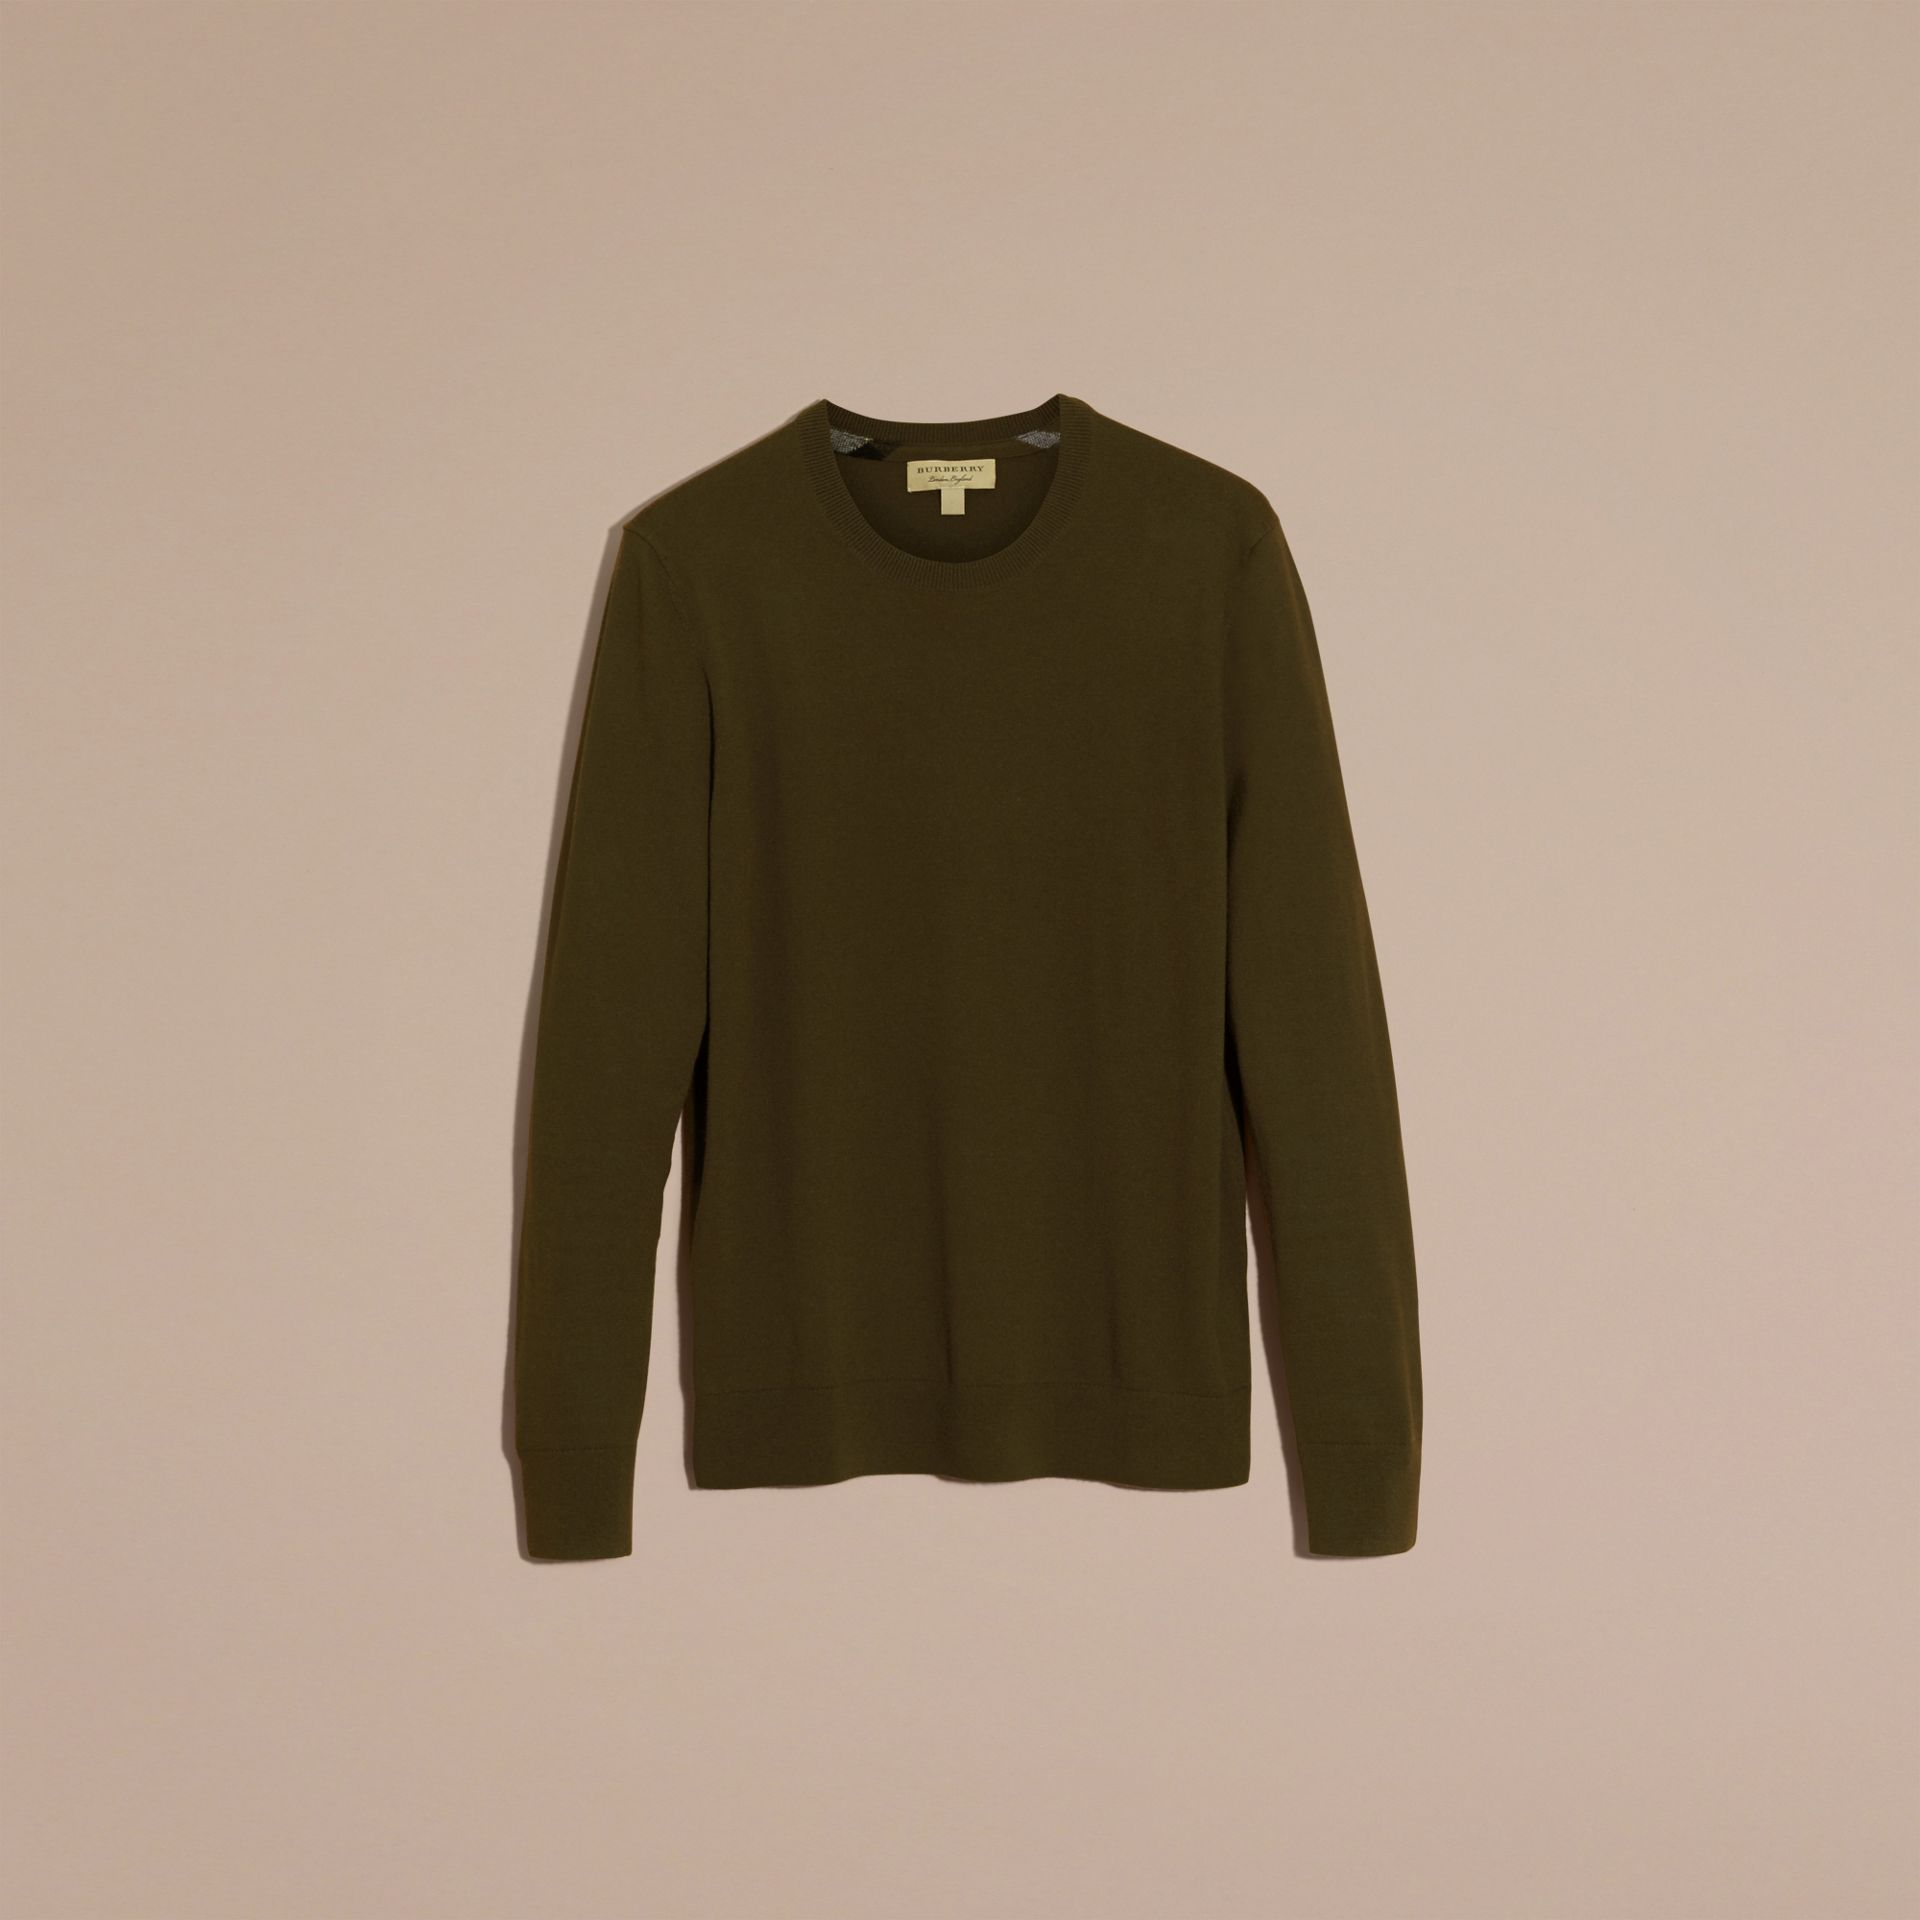 Military olive Lightweight Crew Neck Cashmere Sweater with Check Trim Military Olive - gallery image 7